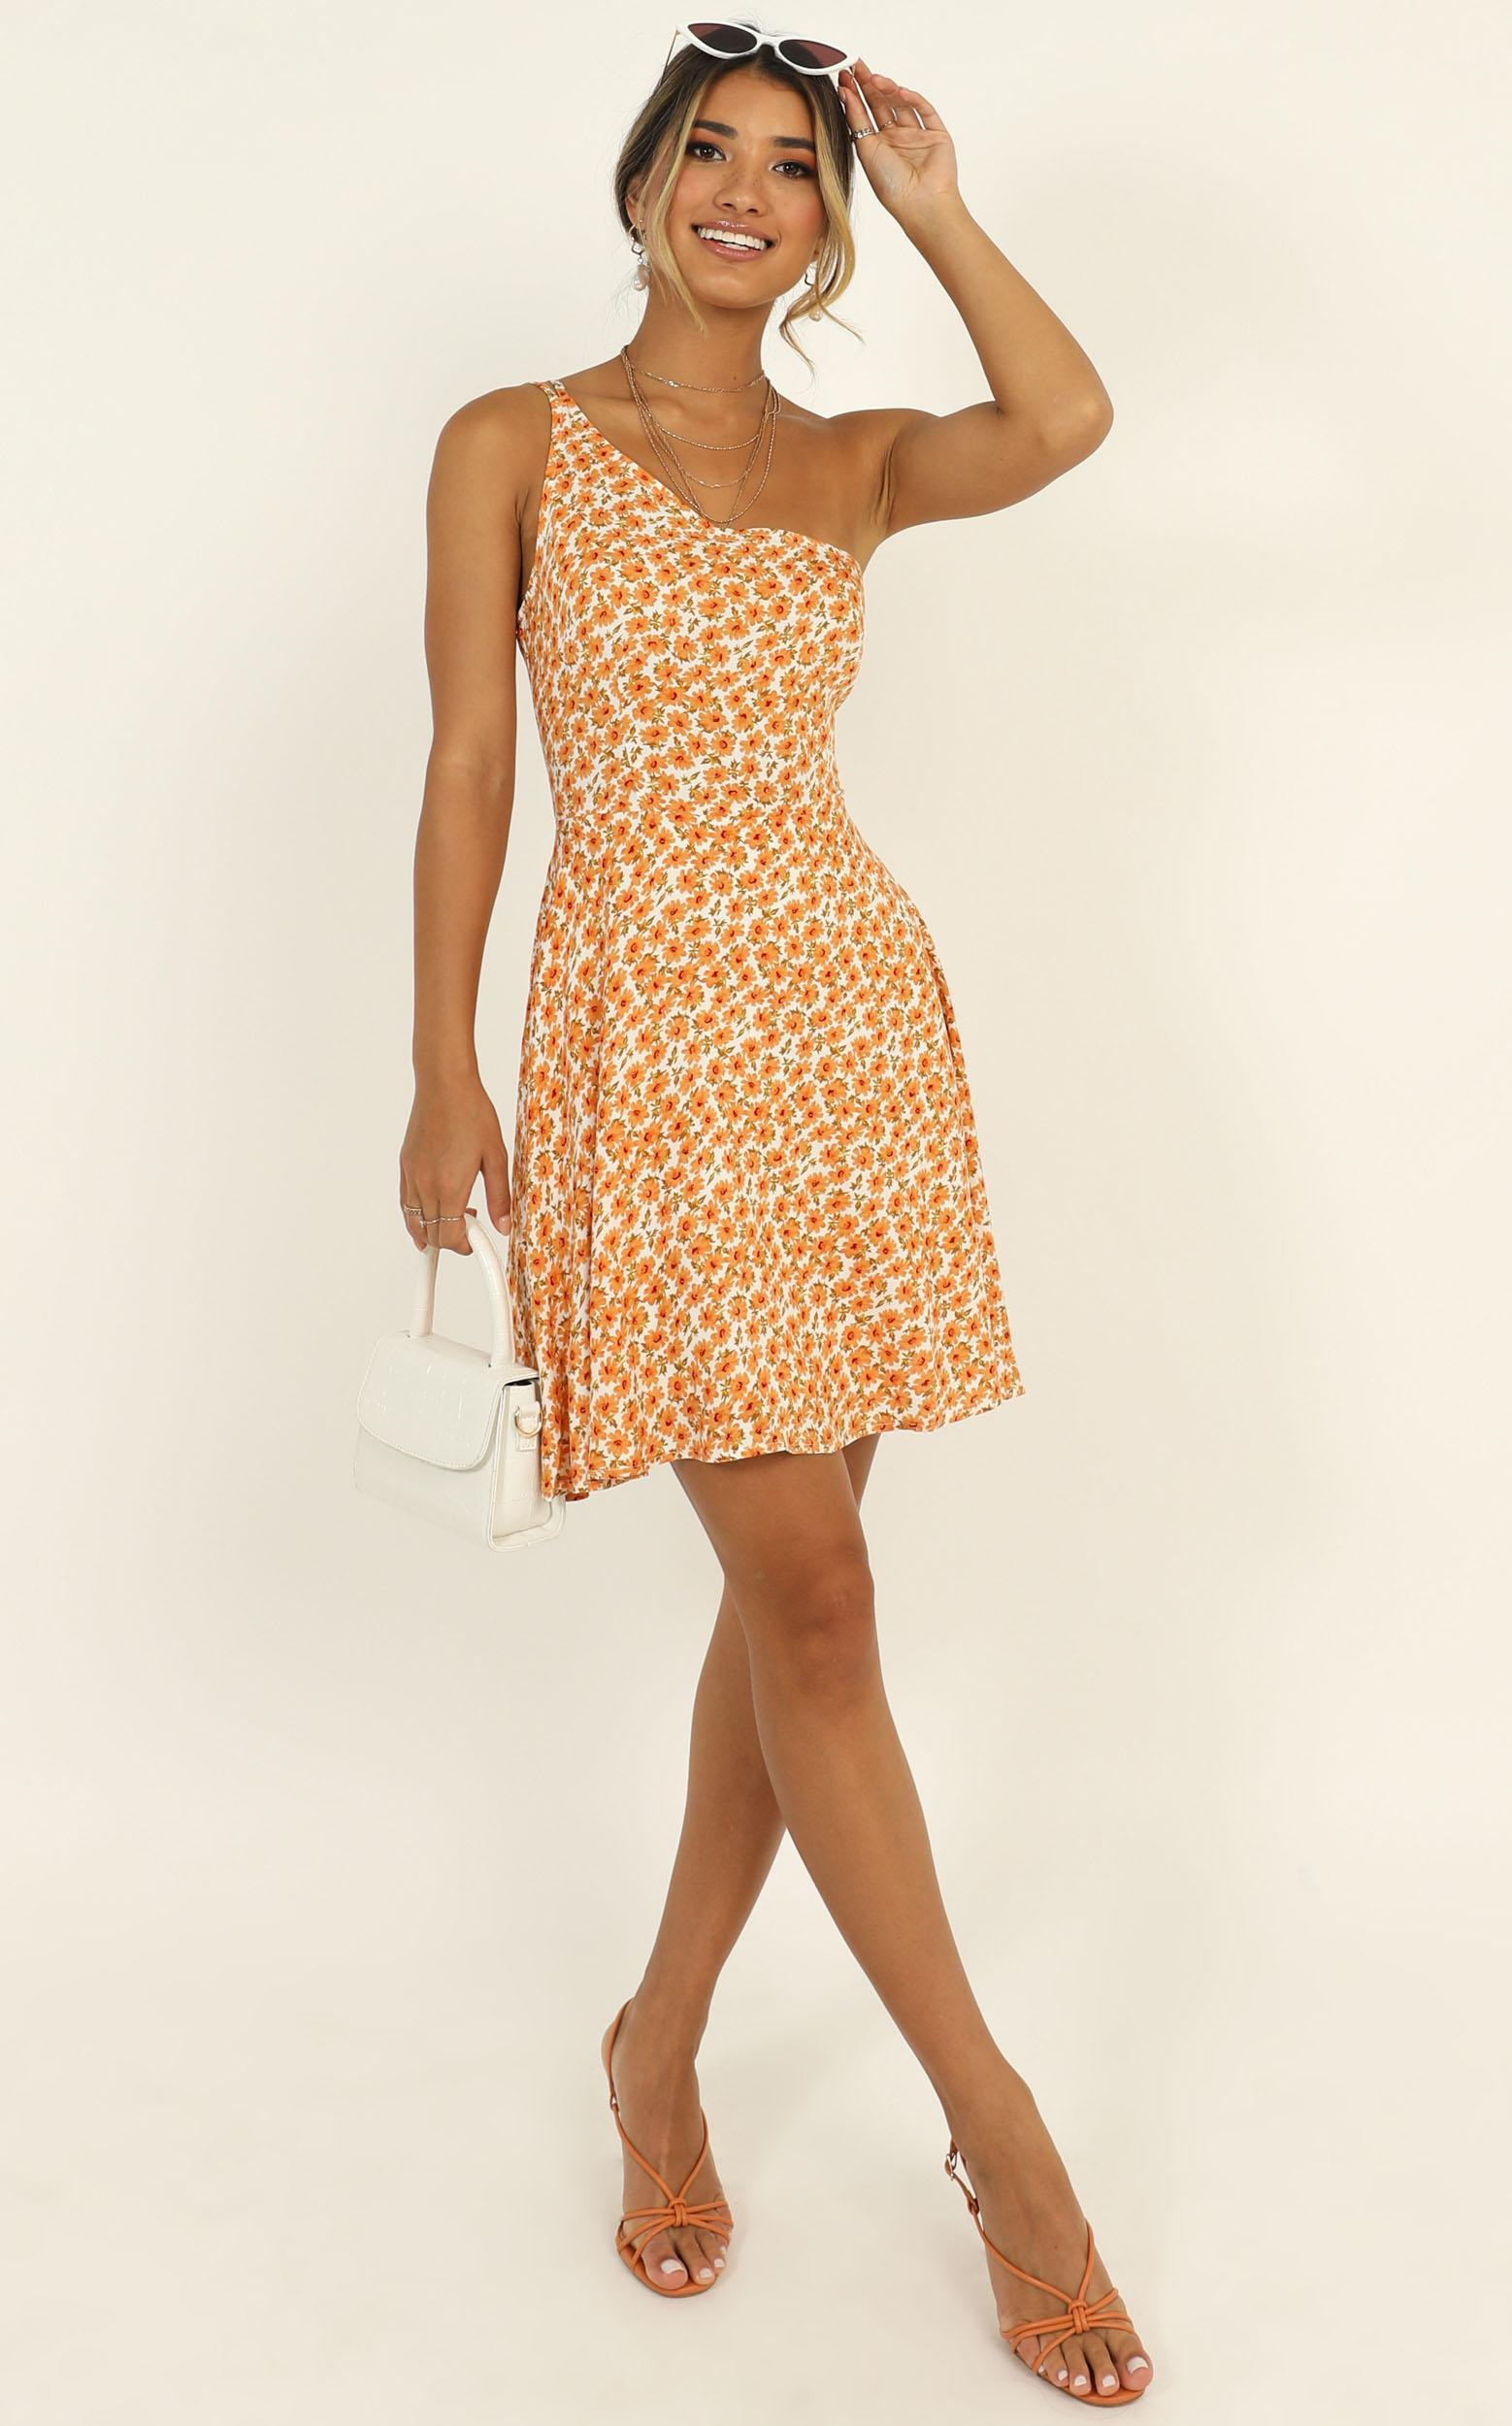 Two Is Better Than One dress in orange floral - 16 (XXL), Orange, hi-res image number null